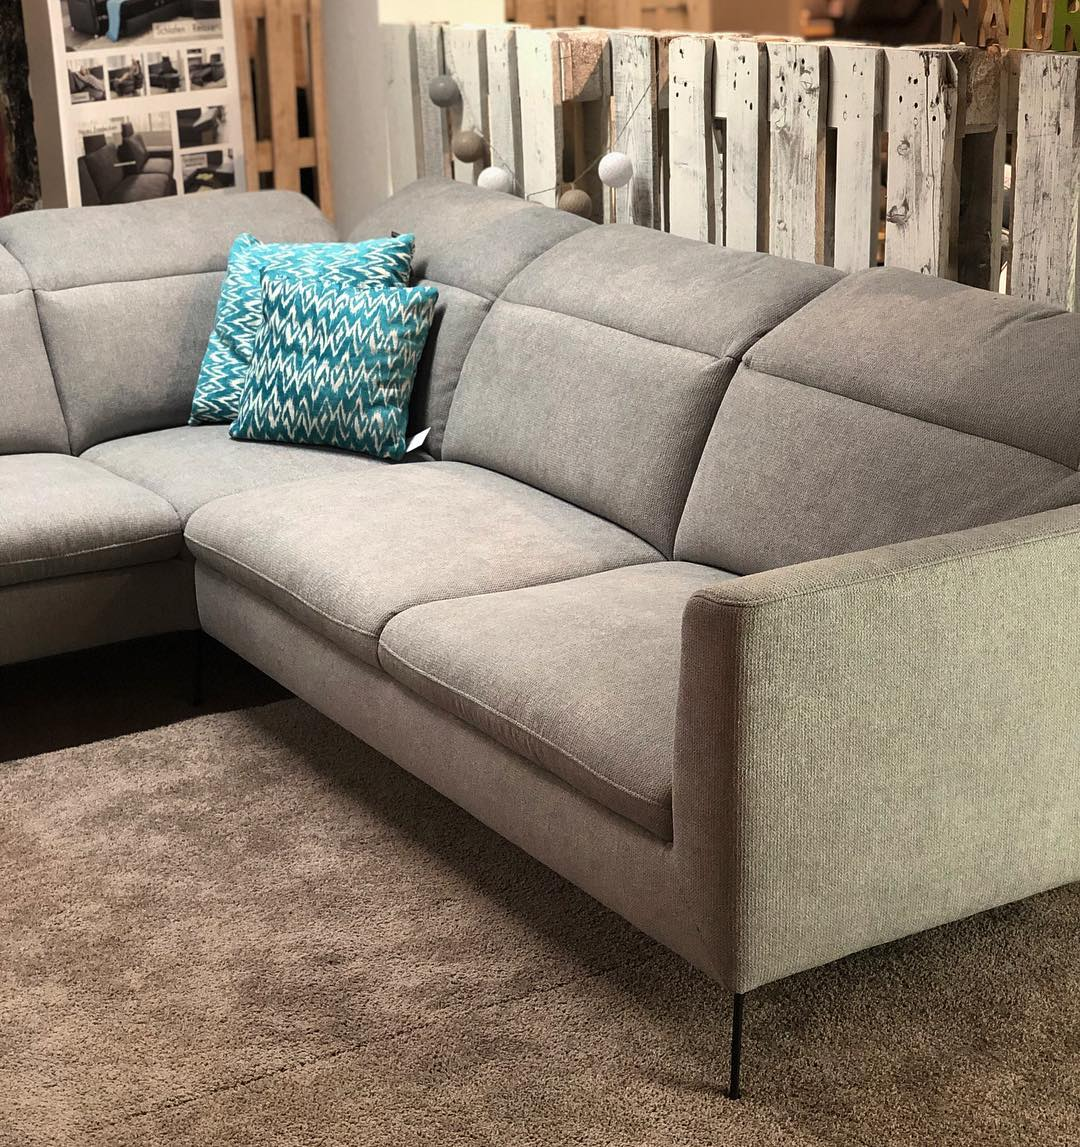 Latest Sofa Designs 2021 Top Styles, Trends and Colors of Sofa 2021 55+ Photos